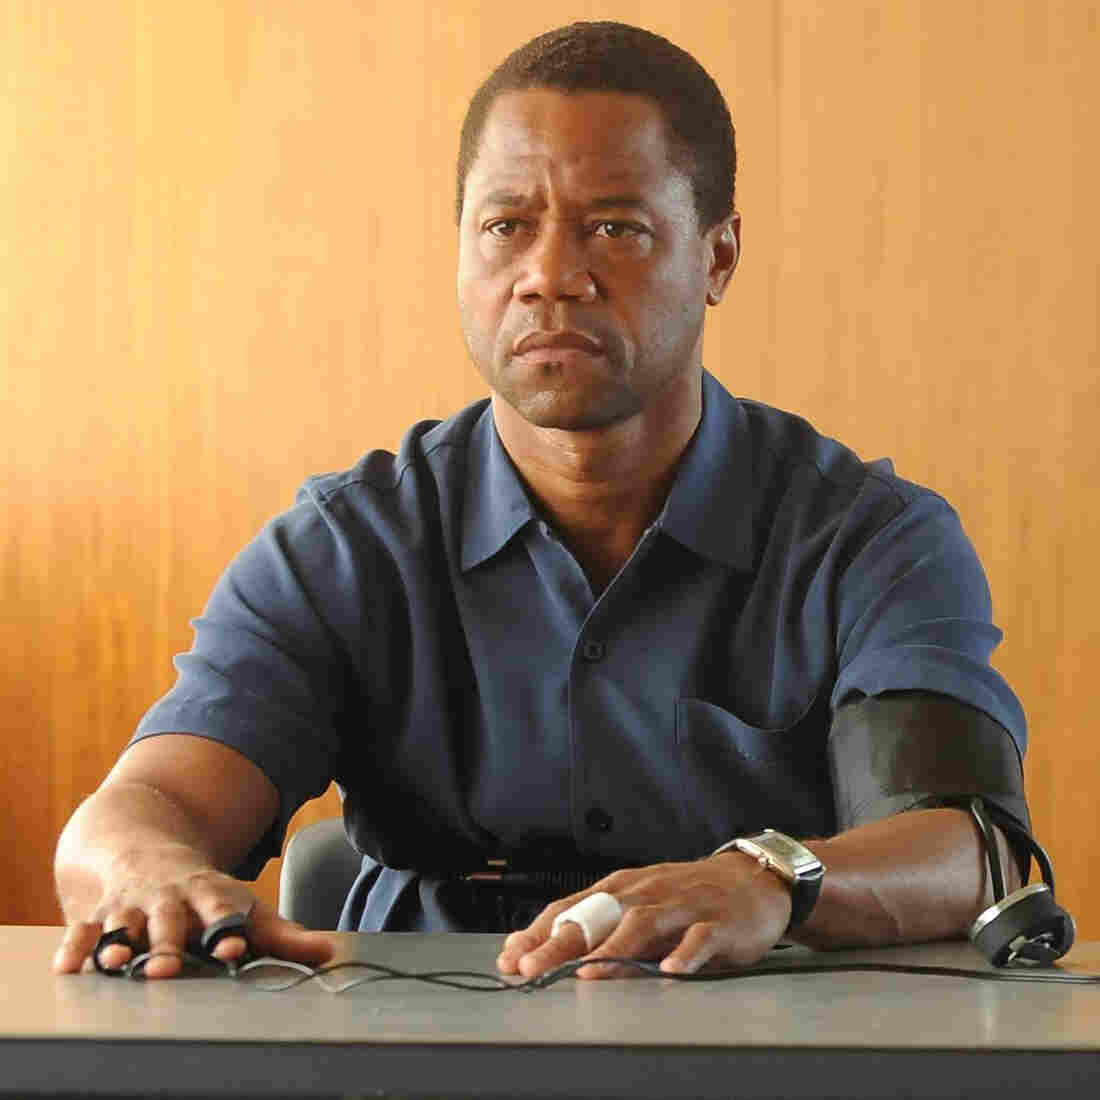 'The People V. O.J. Simpson' Bursts With Sharp Scenes, Powerful Performances